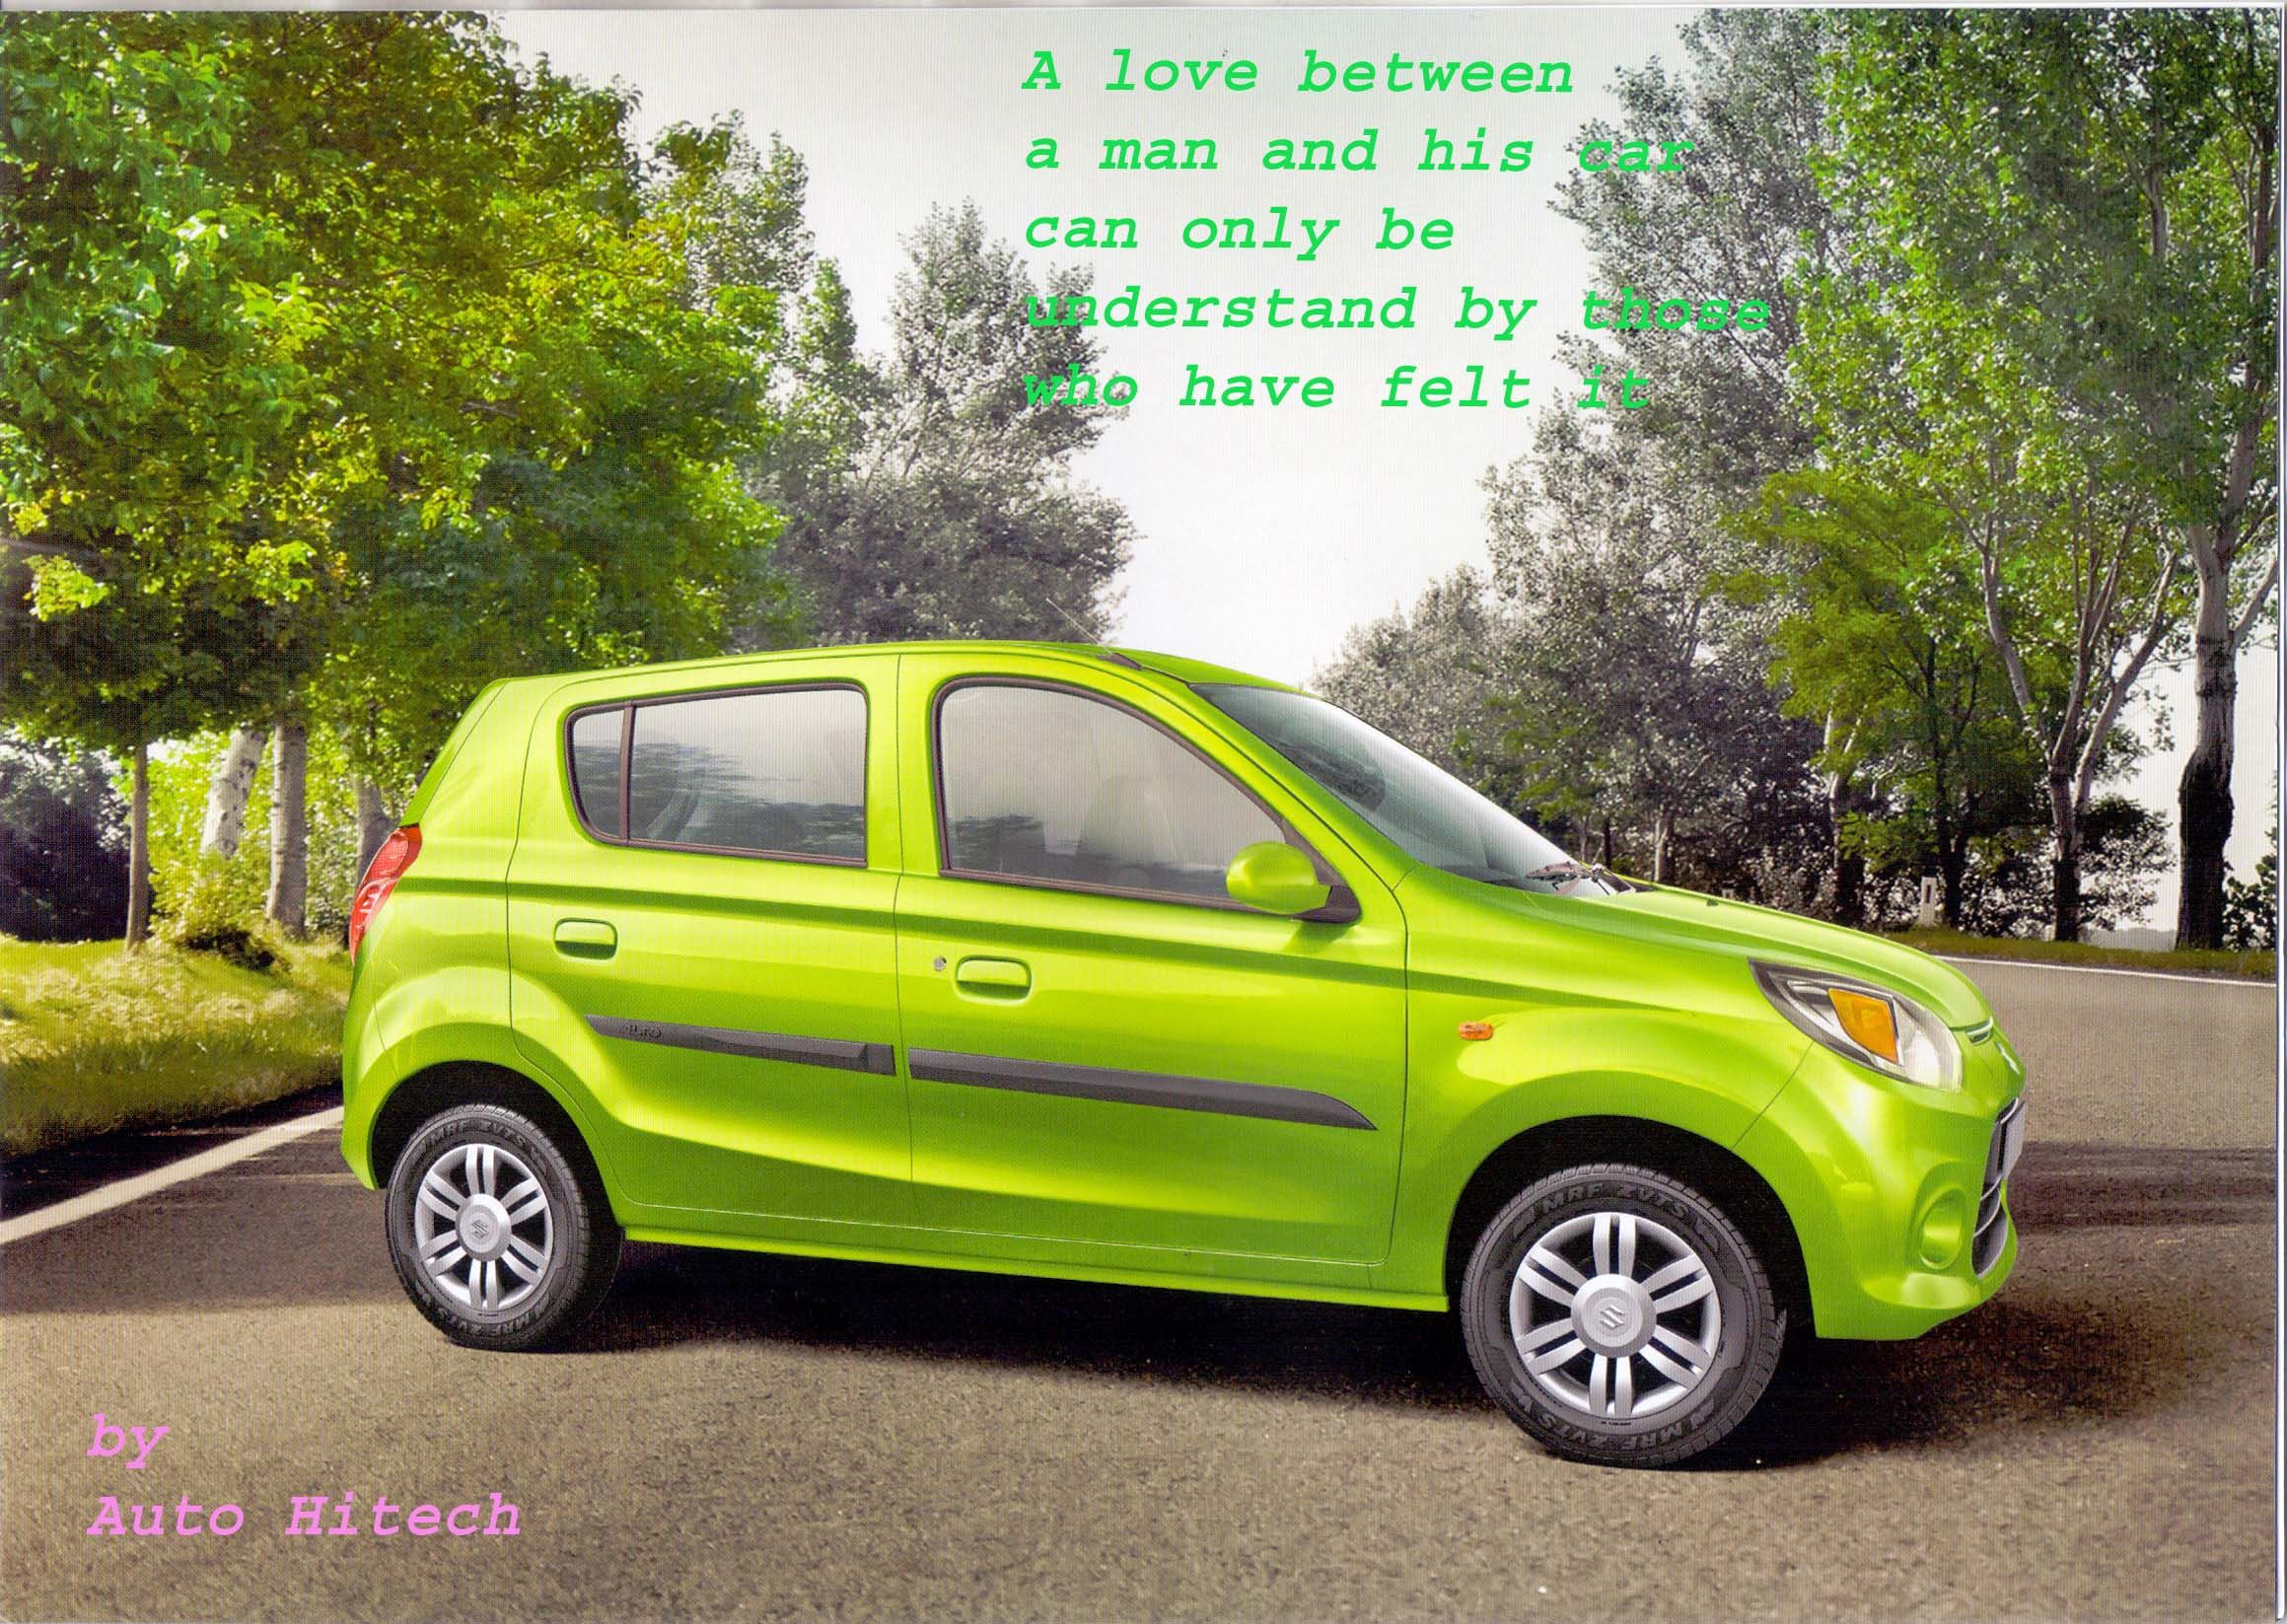 Pin By Auto Hitech On Car Quotes Maruti Suzuki Alto Suzuki Alto Suzuki